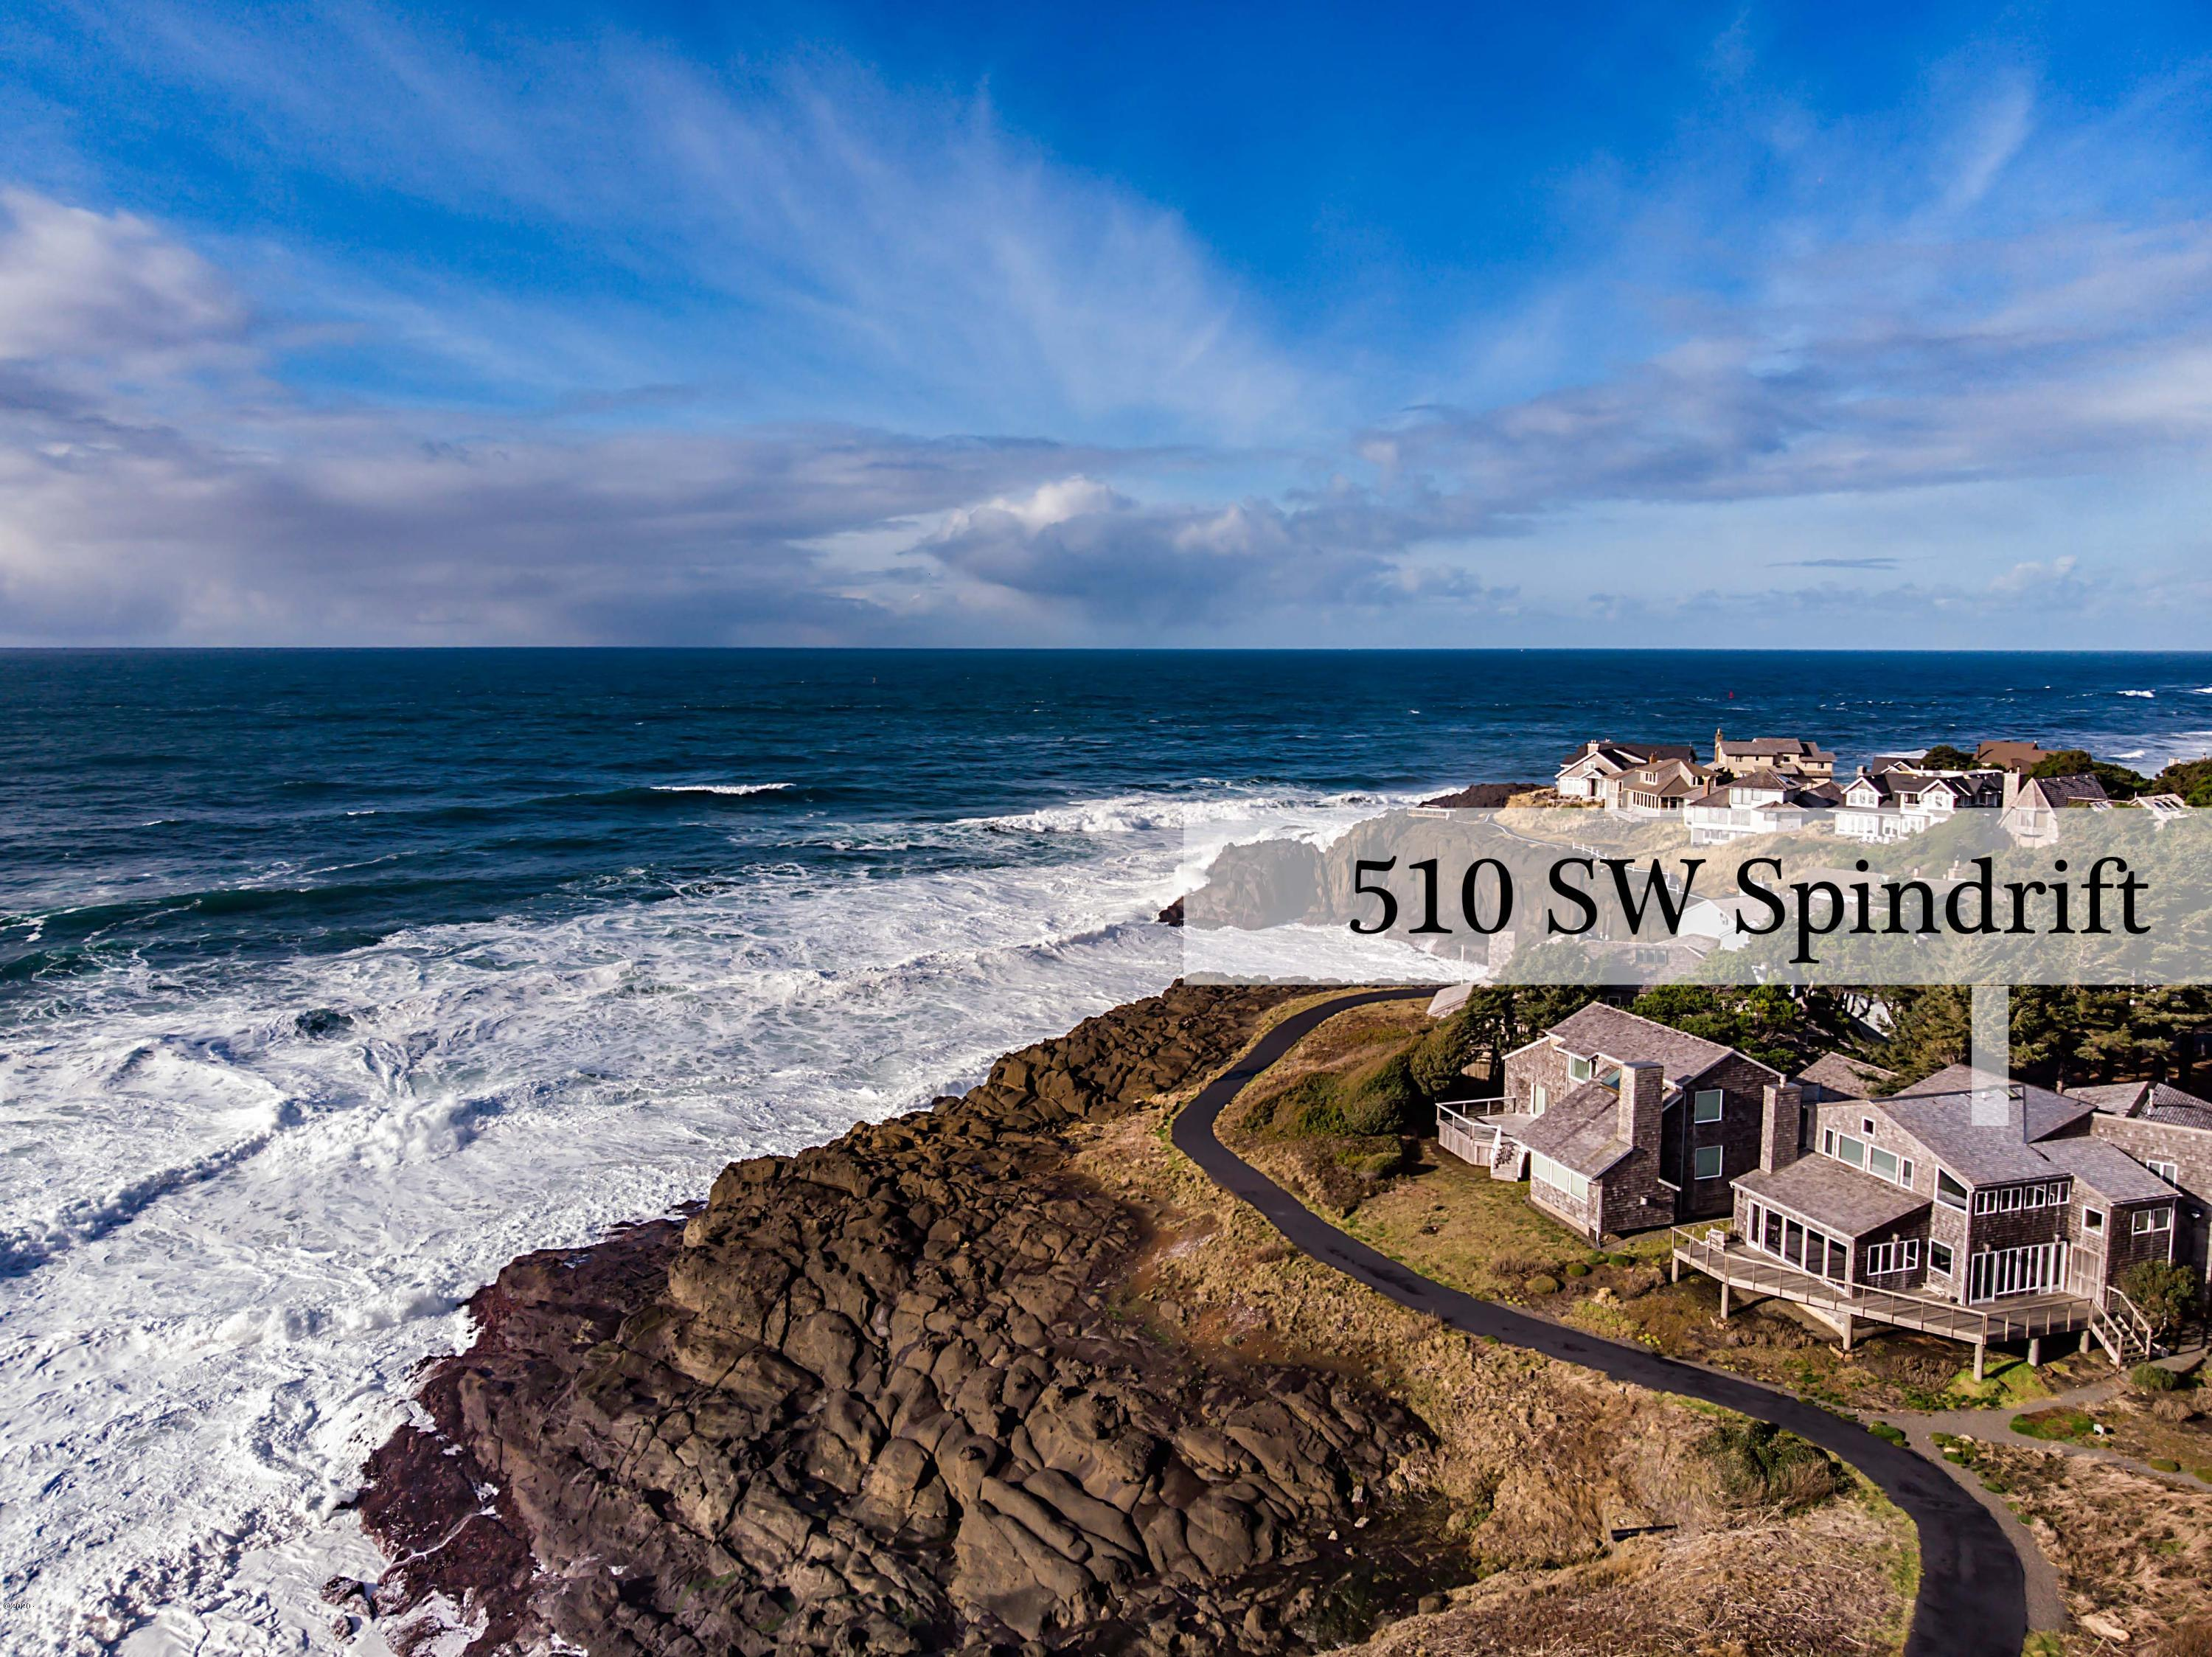 510 SW Spindrift, Depoe Bay, OR 97341